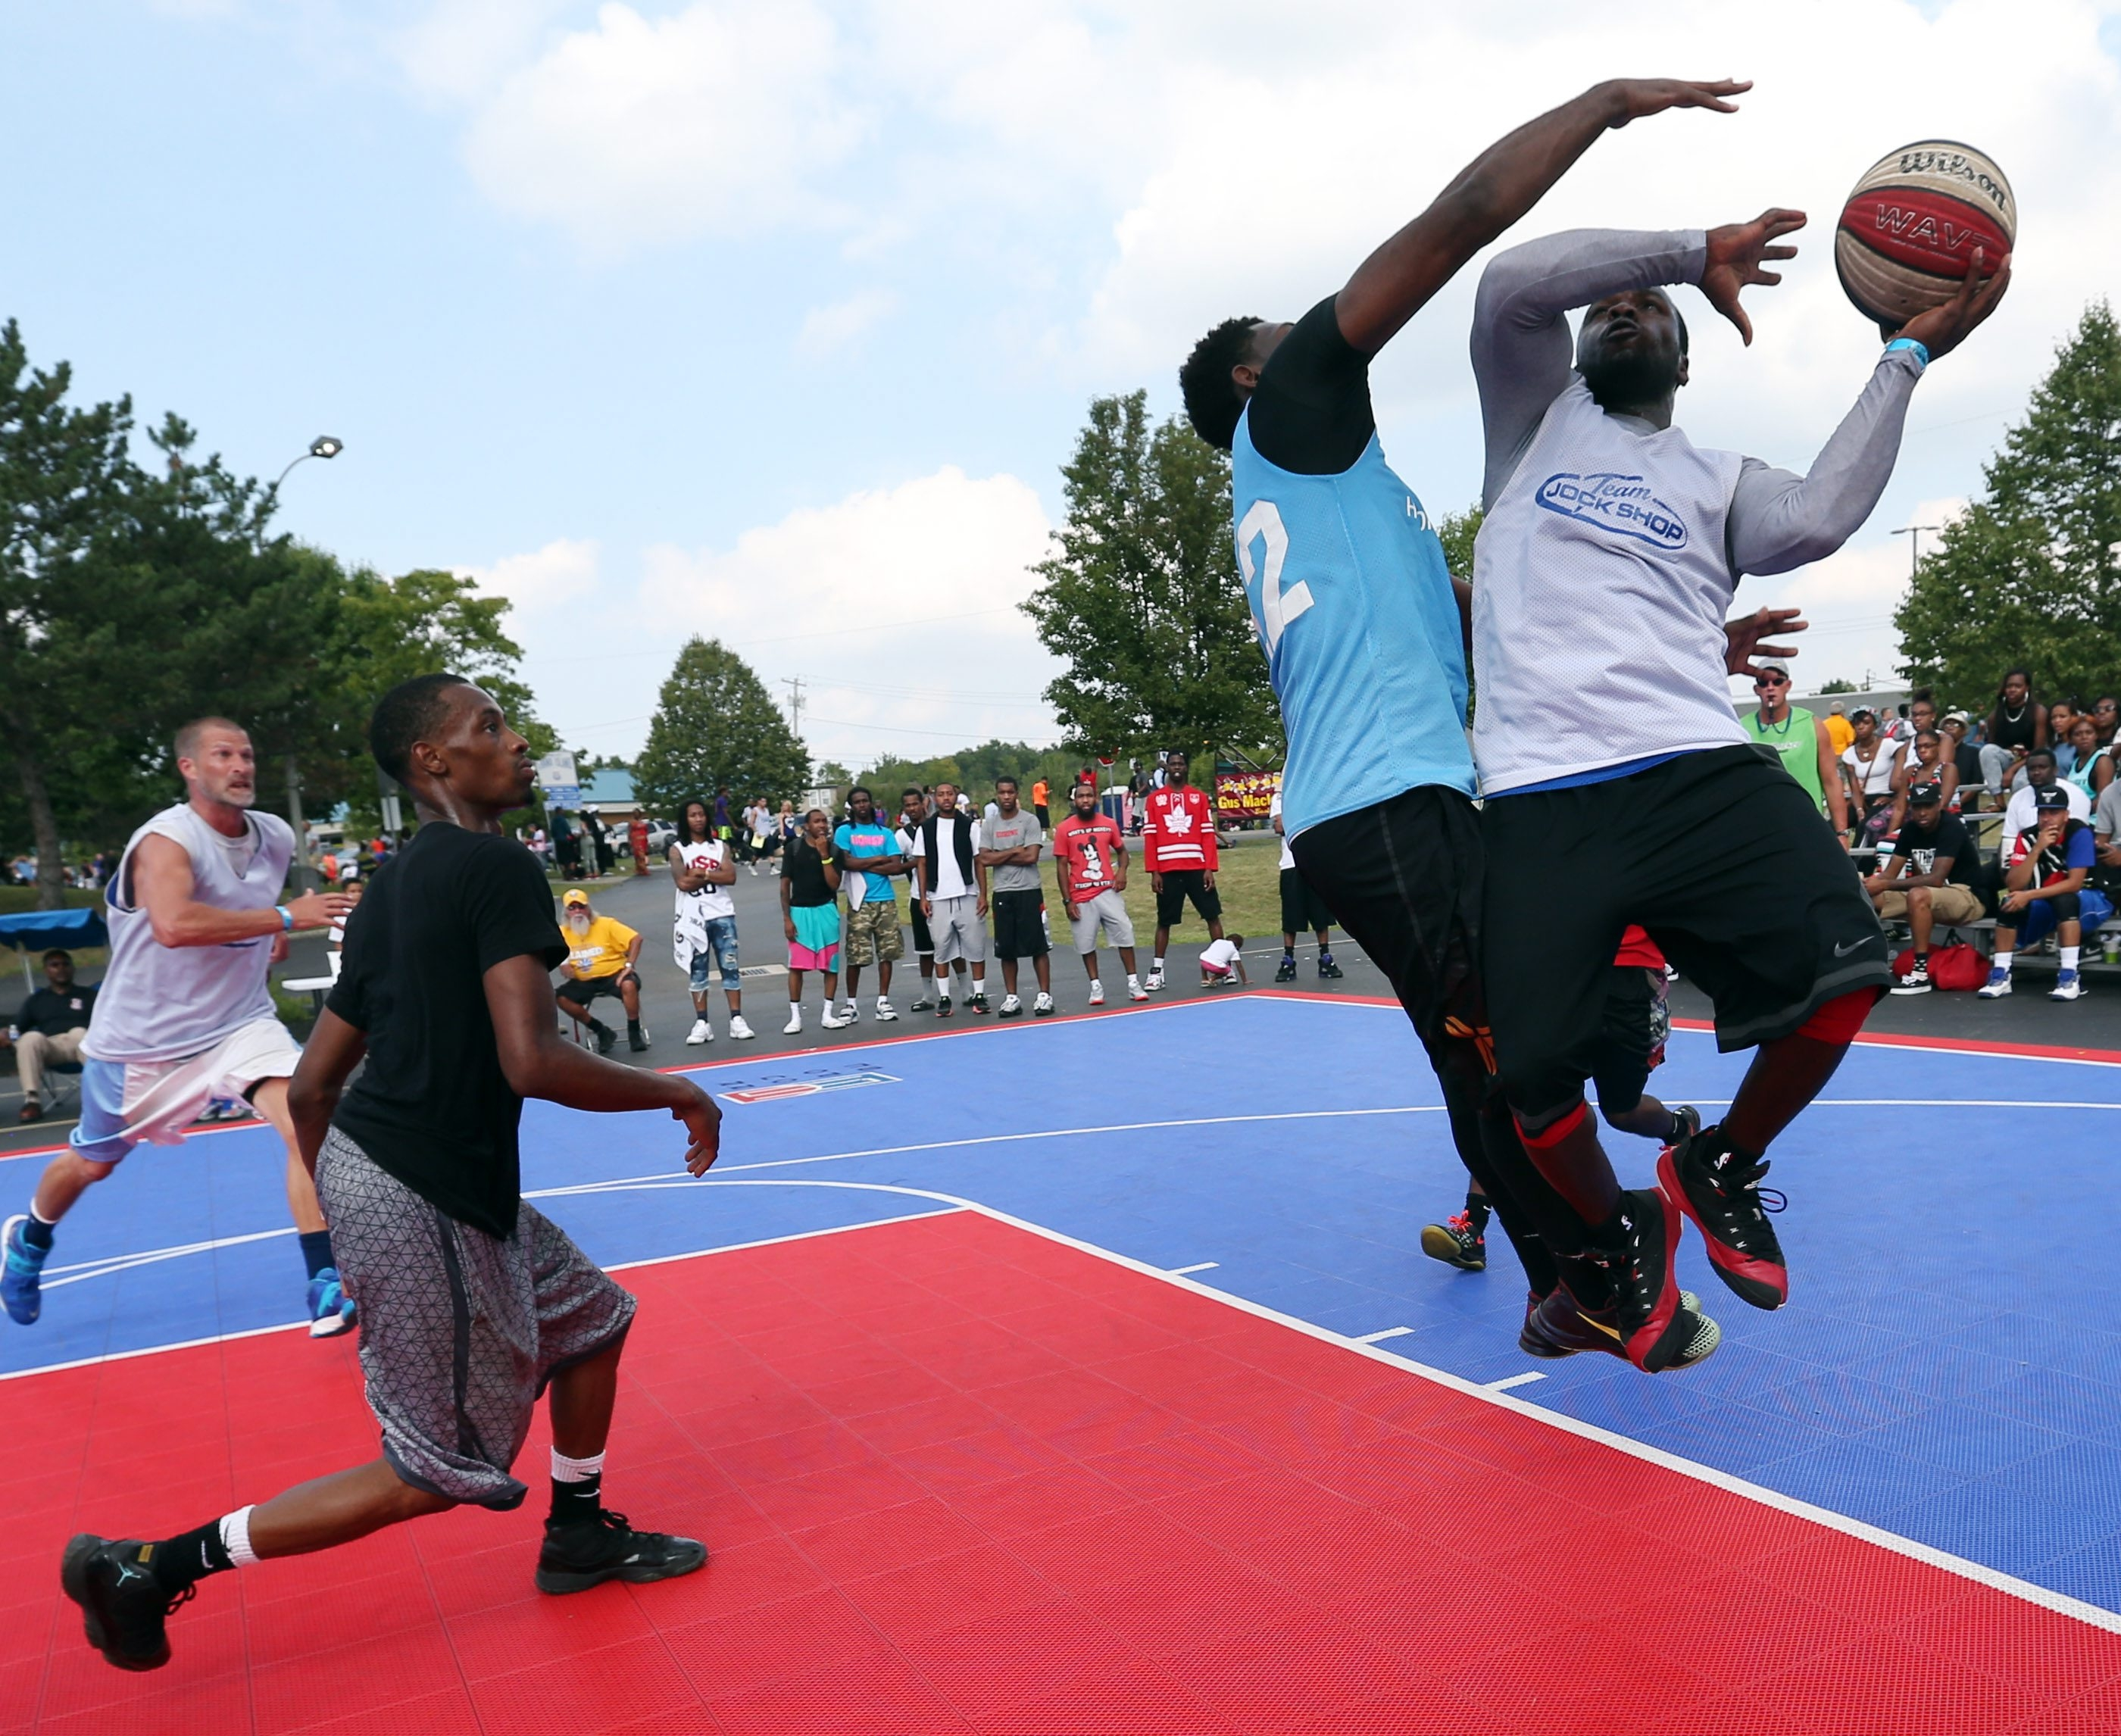 Maceo Wofford of Team Jock Shop shoots against BVO's John Black in the top men's championship game in the Gus Macker Tournament on Grand Island.